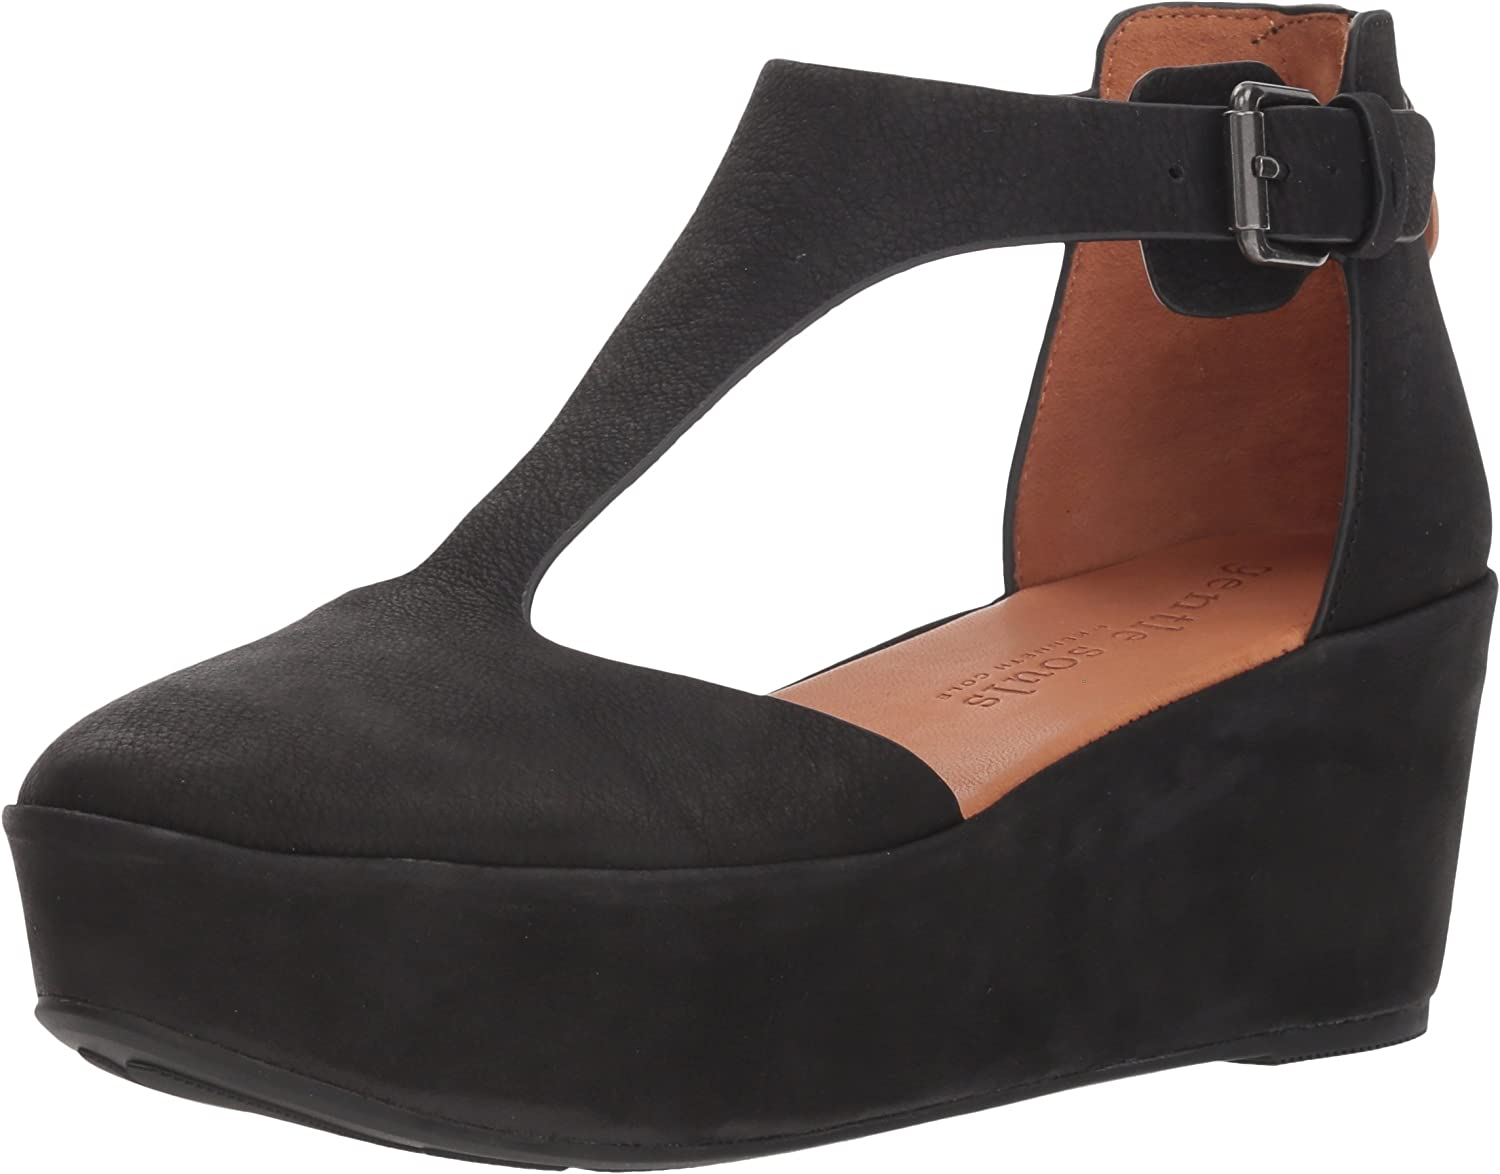 Gentle Souls Womens Nydia Platform Wedge with T-Strap Platform